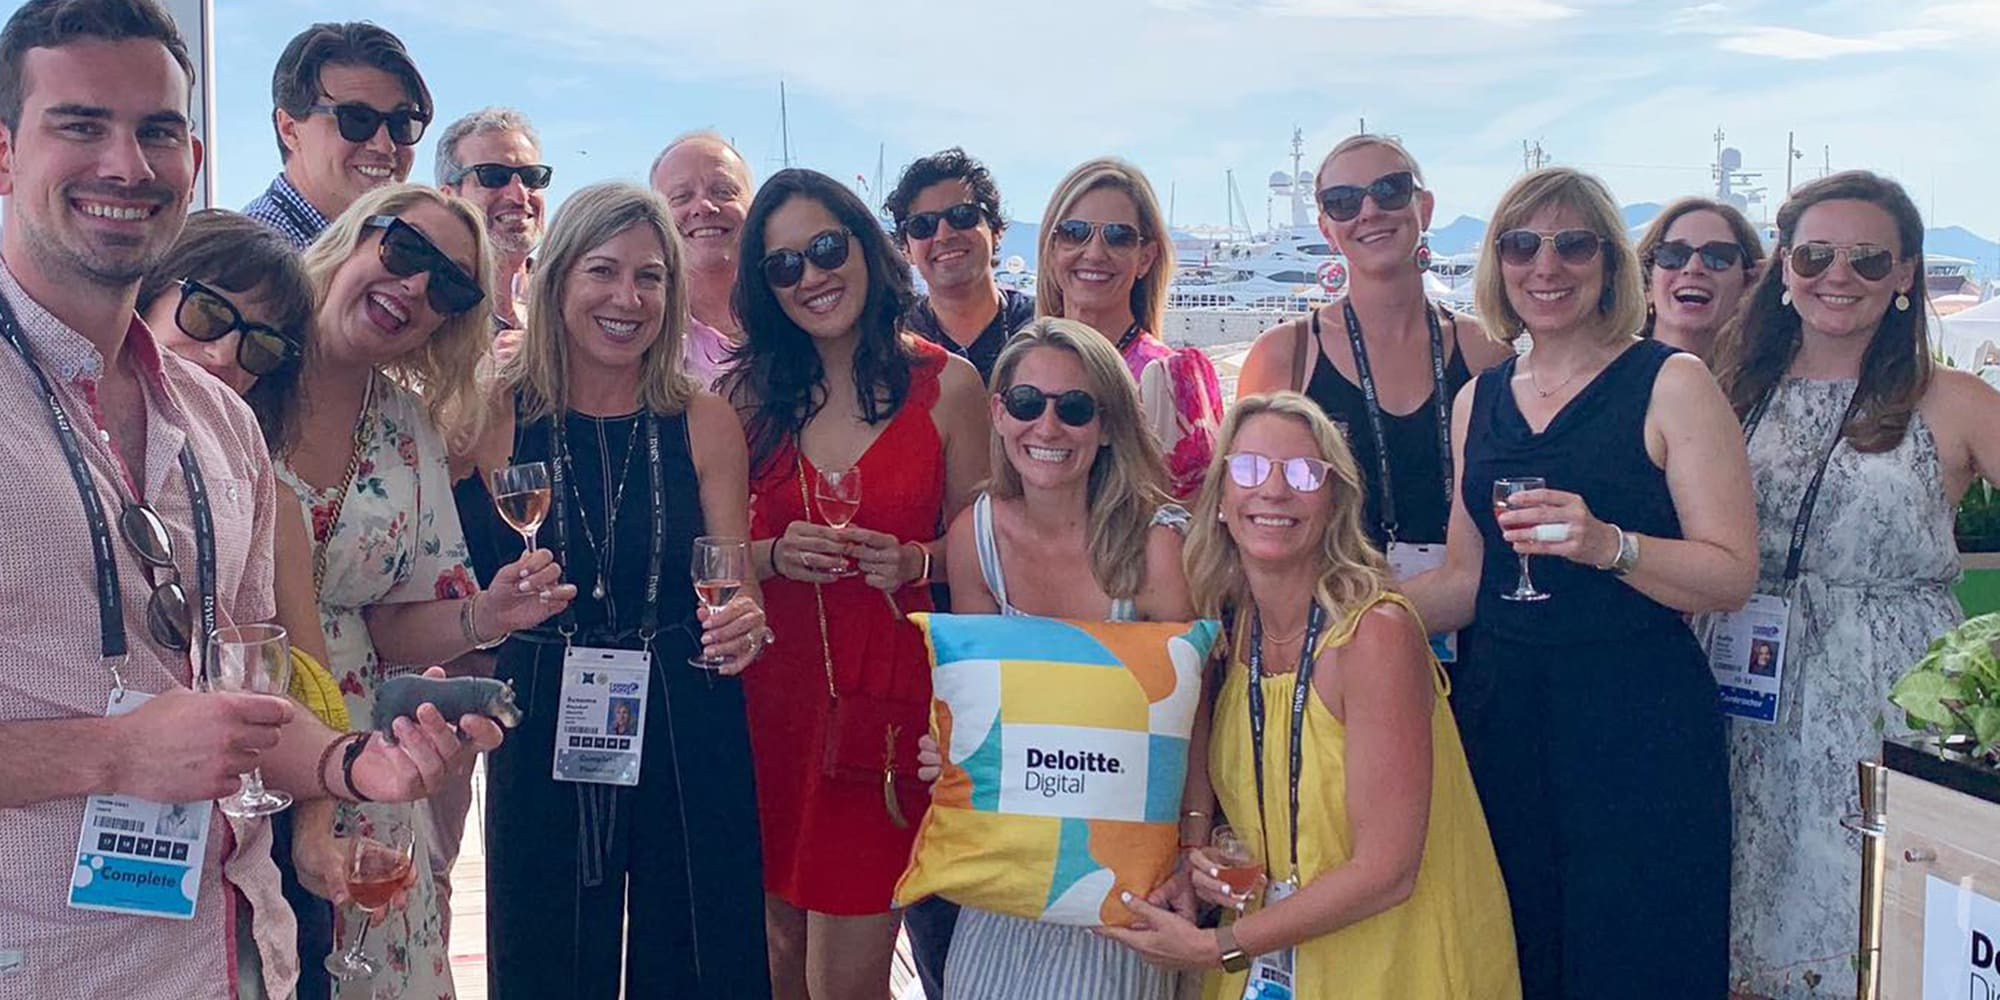 deloitte digital and heat agency at cannes lions